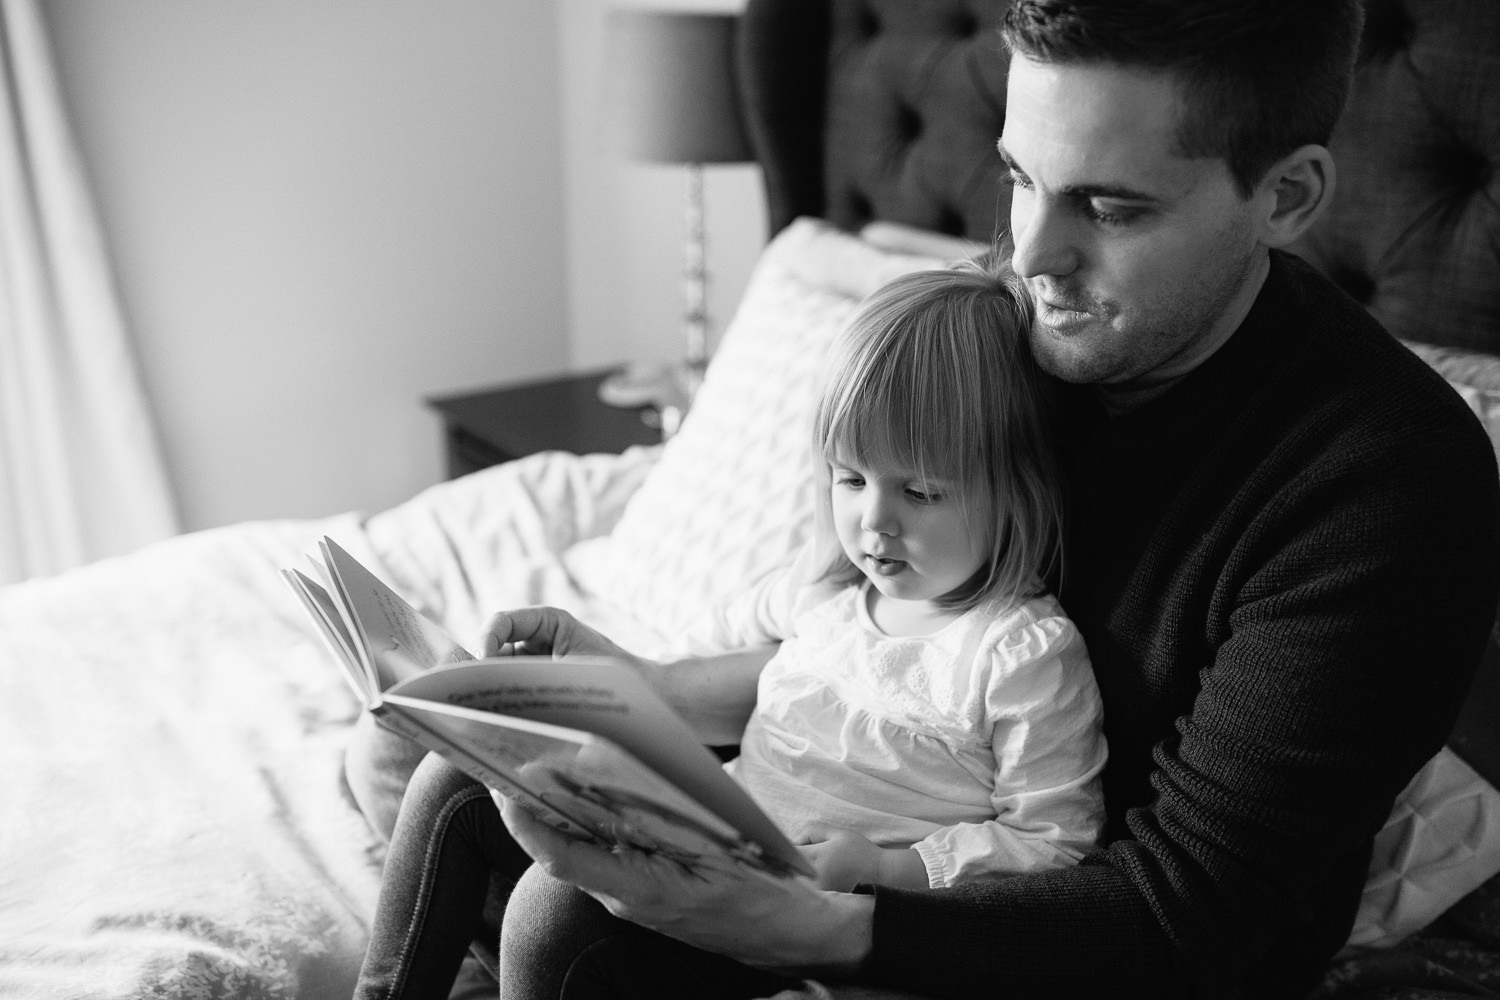 2 year old toddler girl sitting in father's lap on master bed reading a story book - York Region In-Home Photos